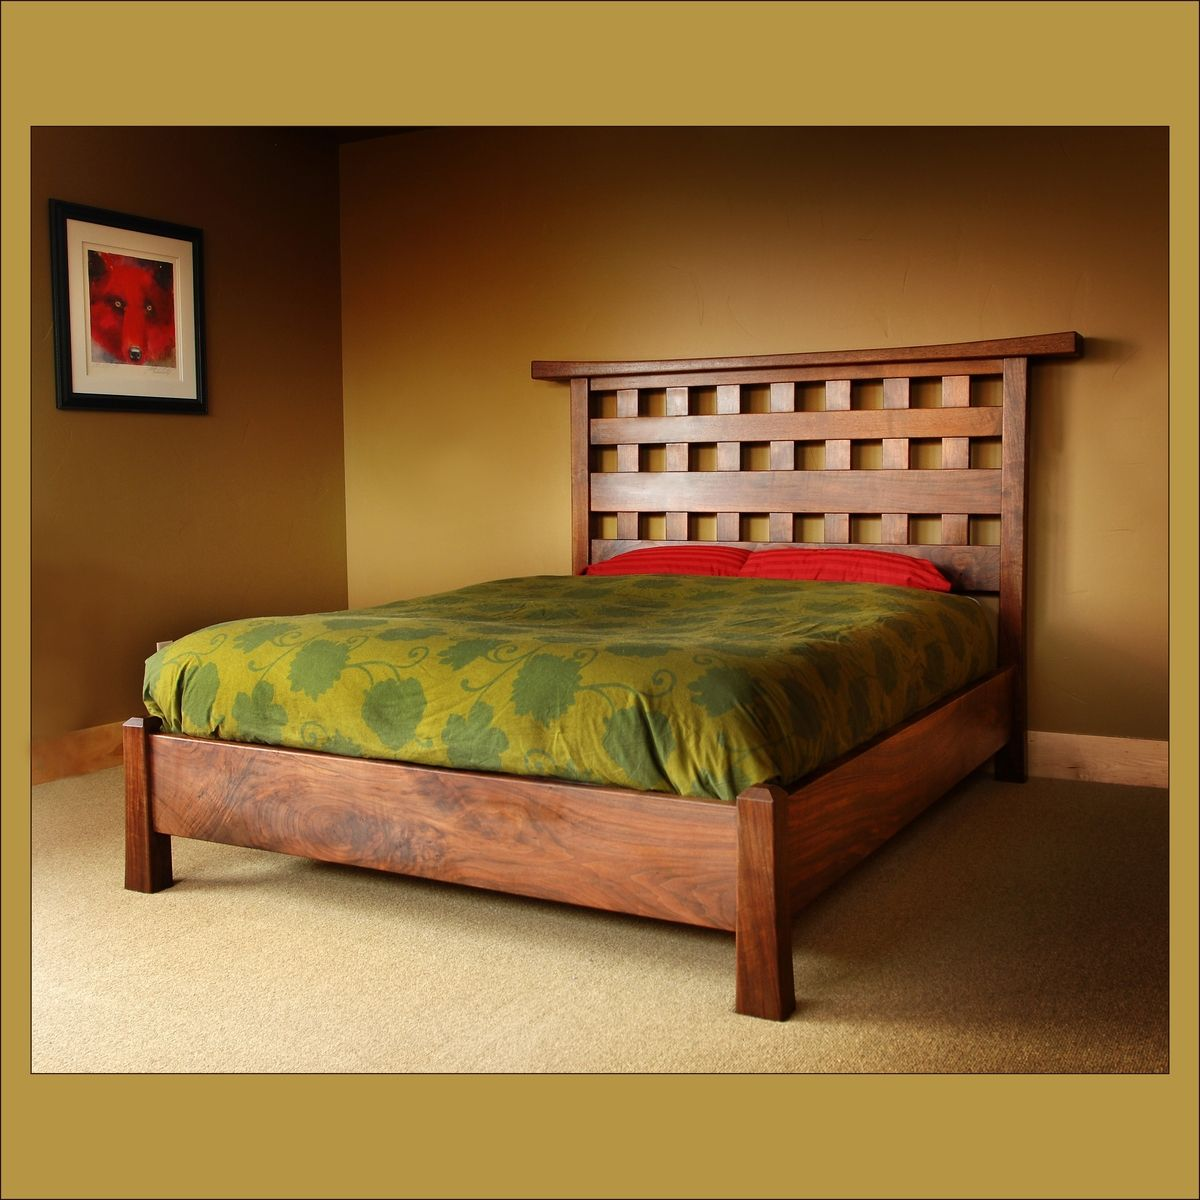 Buy a Hand Crafted Japanese Garden Queensize Bed, made to order